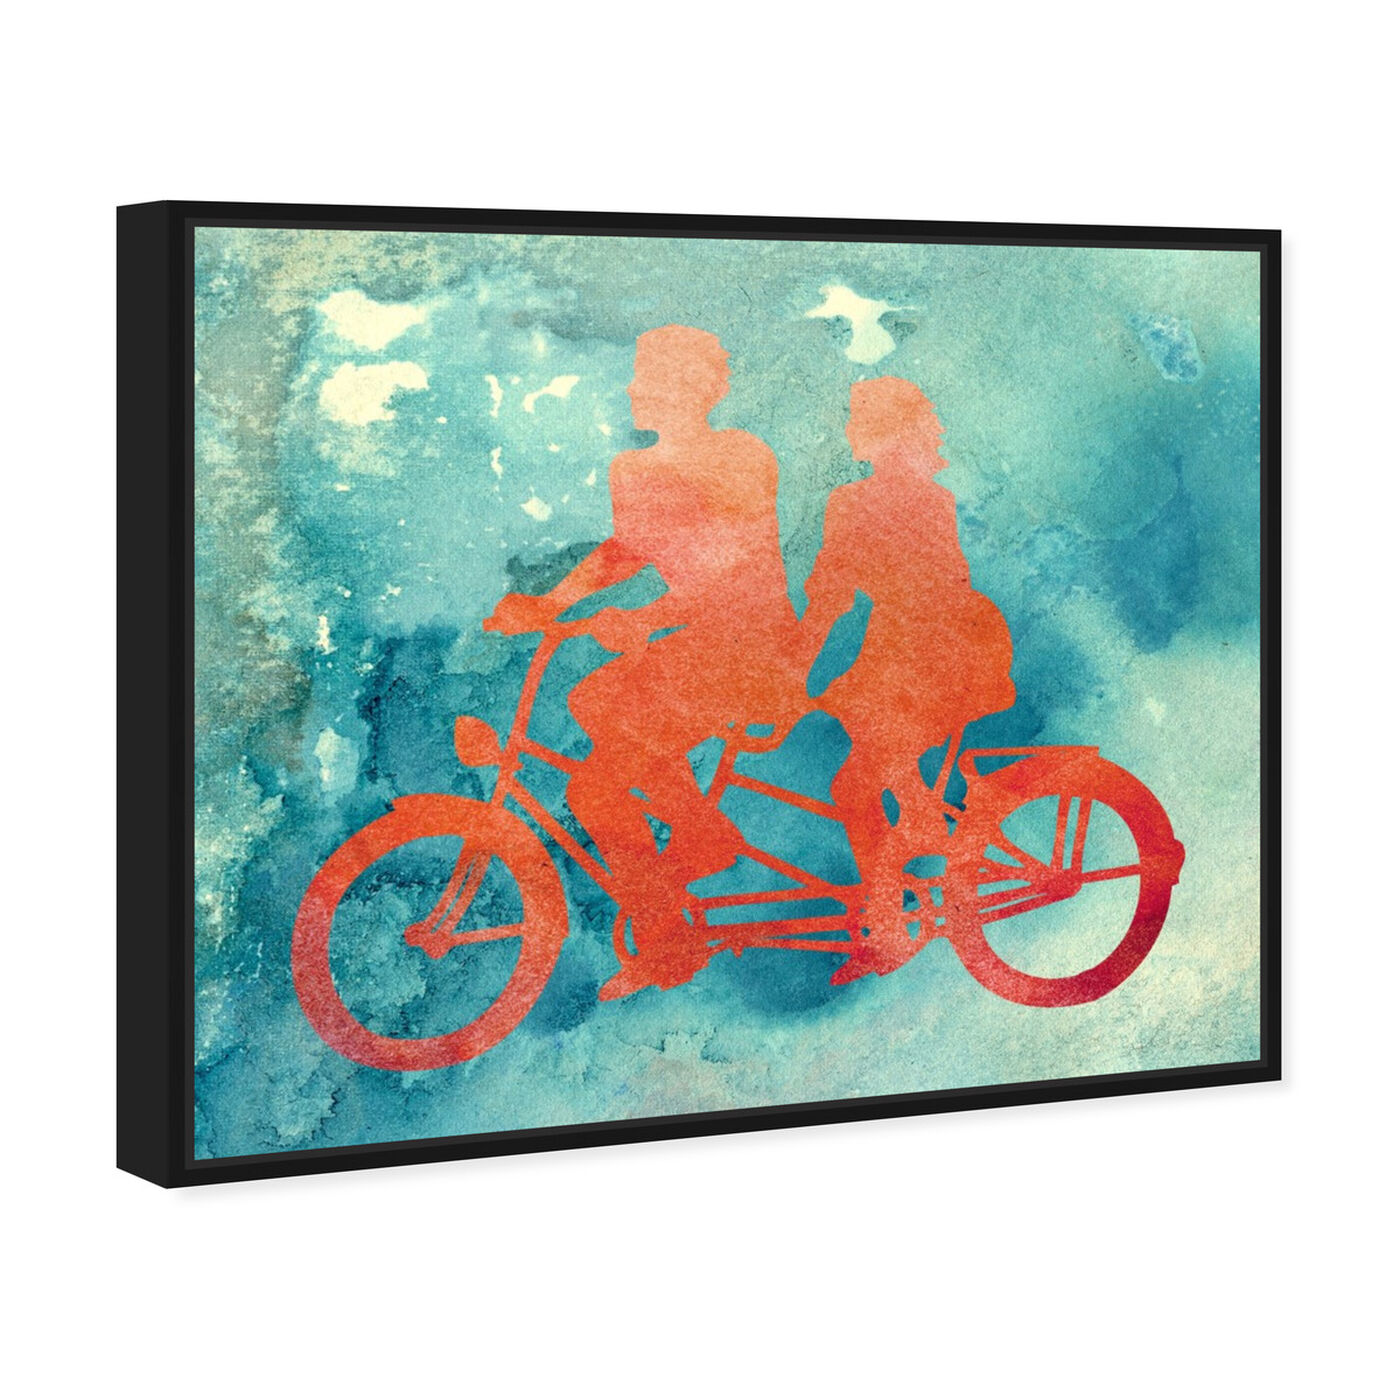 Angled view of La Bicyclette featuring transportation and bicycles art.